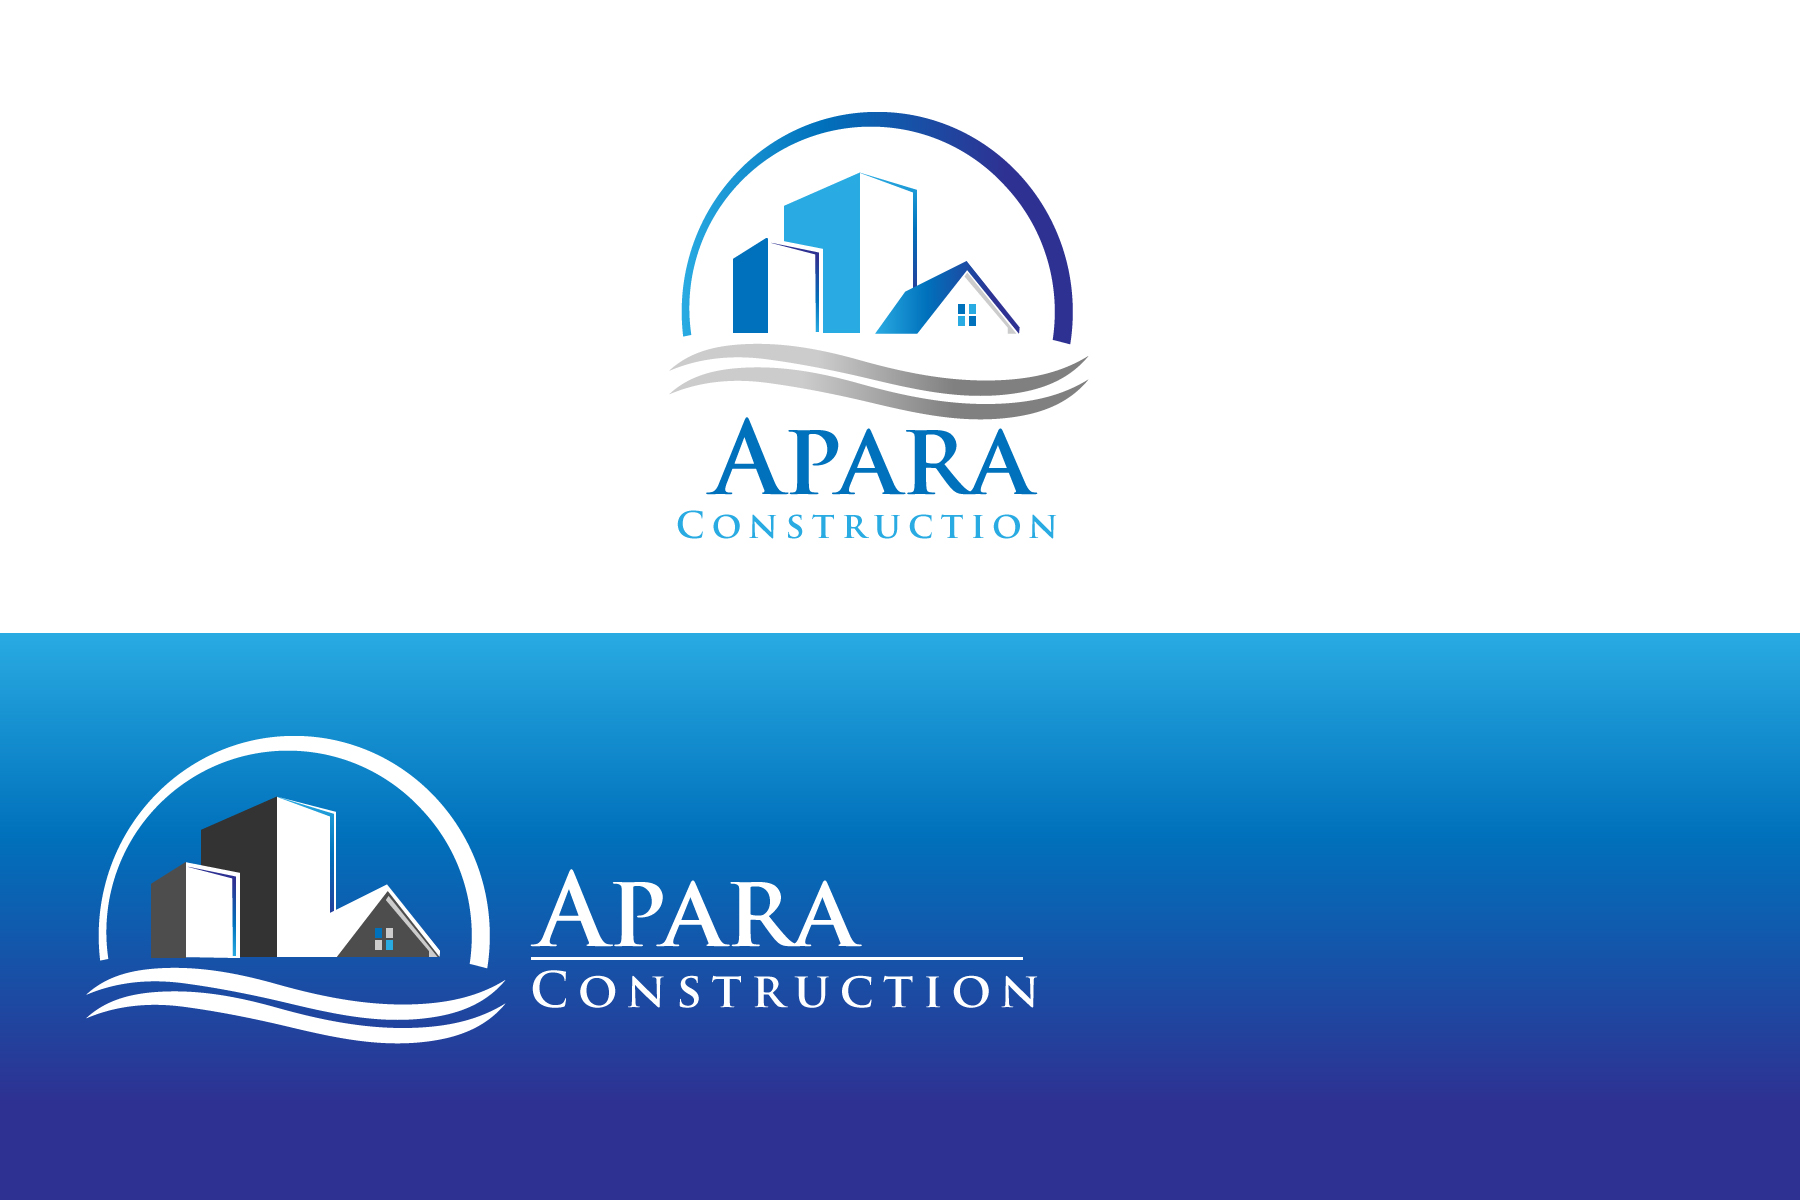 Logo Design by Jagdeep Singh - Entry No. 48 in the Logo Design Contest Apara Construction Logo Design.